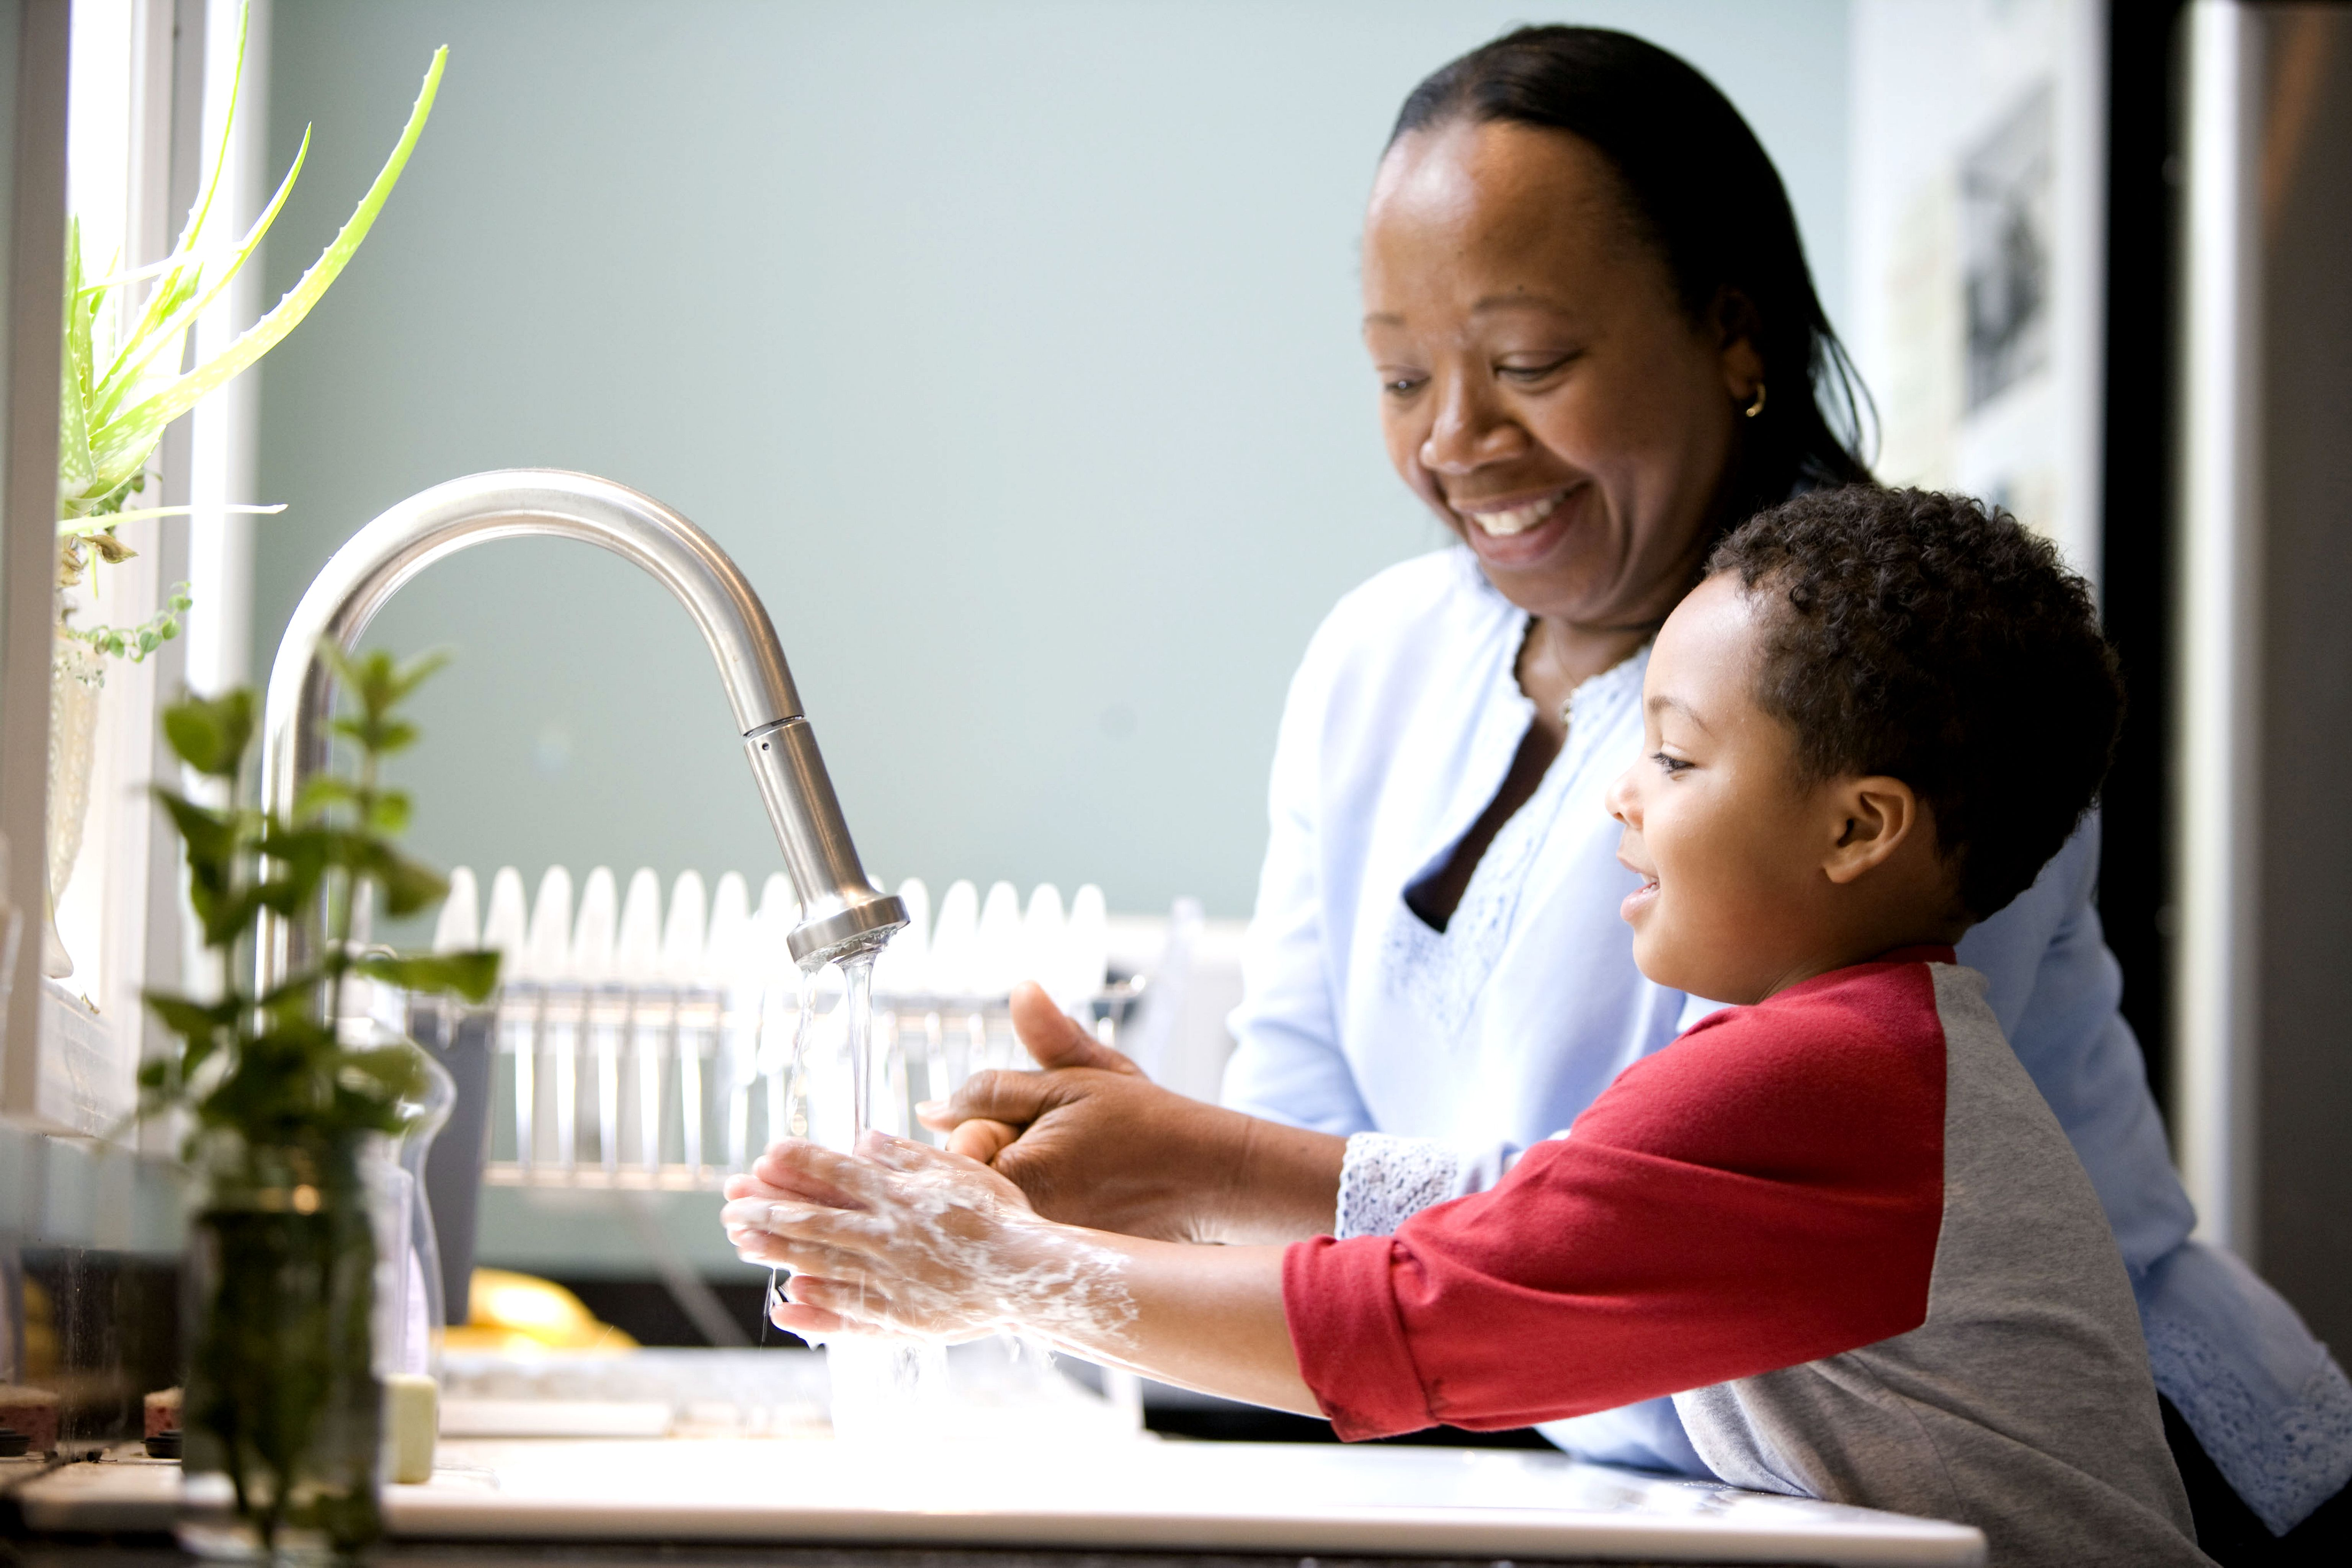 Free picture boy mother laughing kitchen